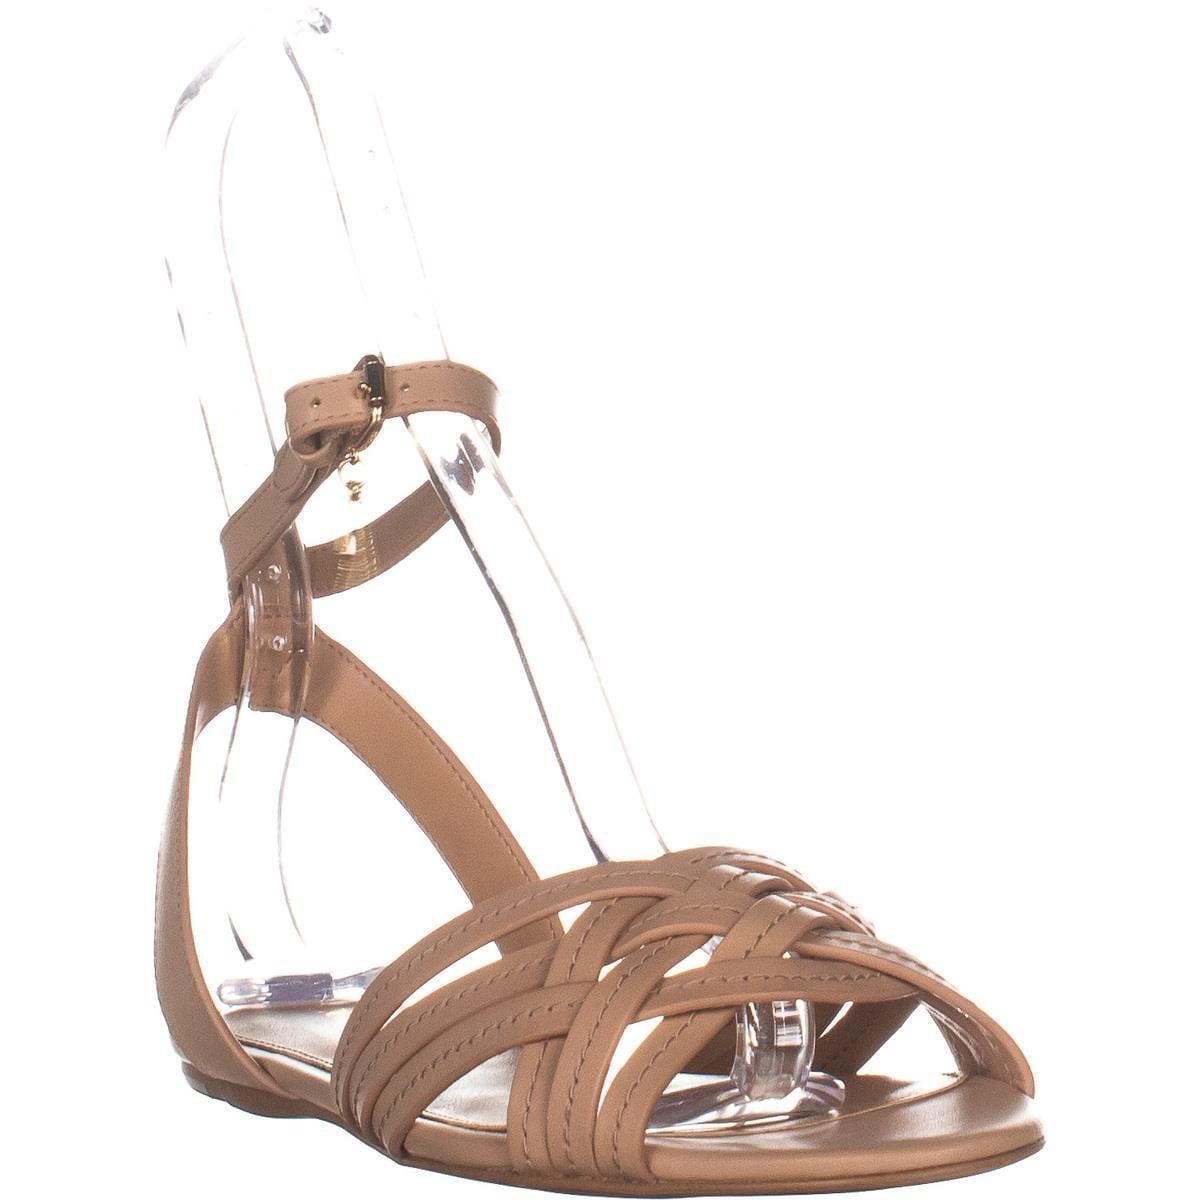 faed58c4a35 Buy Flat Coach Women s Sandals Online at Overstock